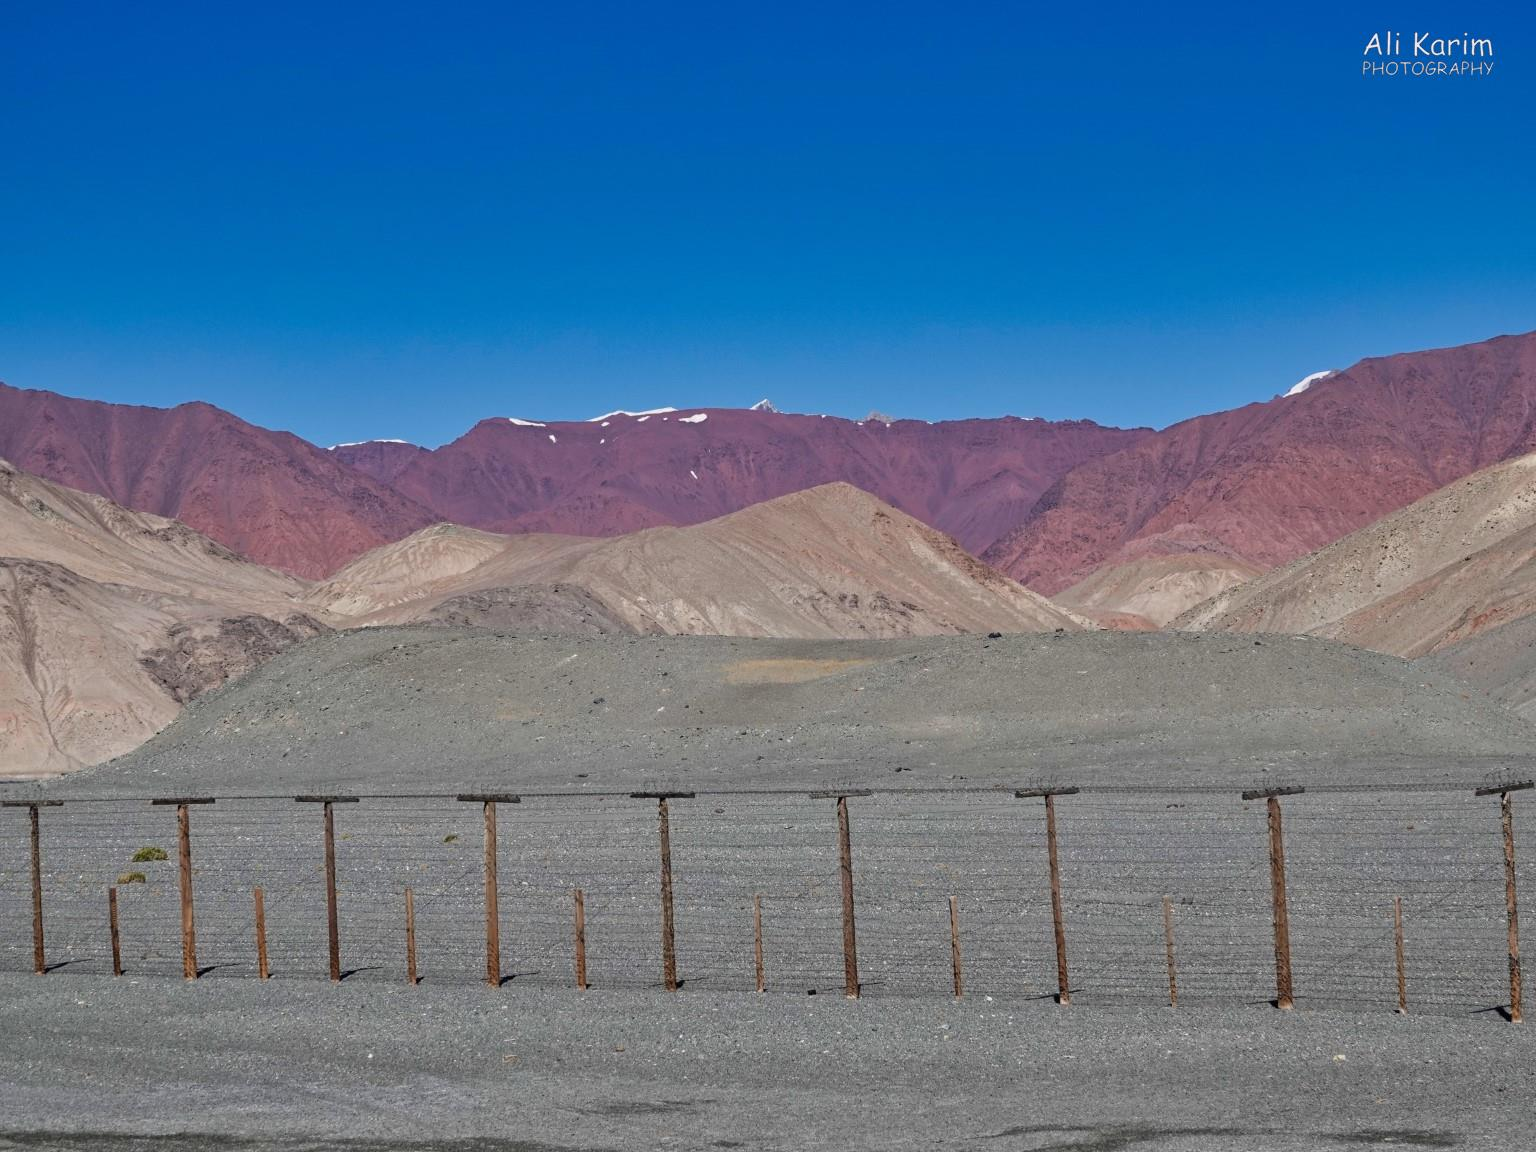 Silk Road 18: Murghab, Tajikistan Border fence erected by the Soviets, to create a buffer zone with China, which is on the other side of these Pamir mountains